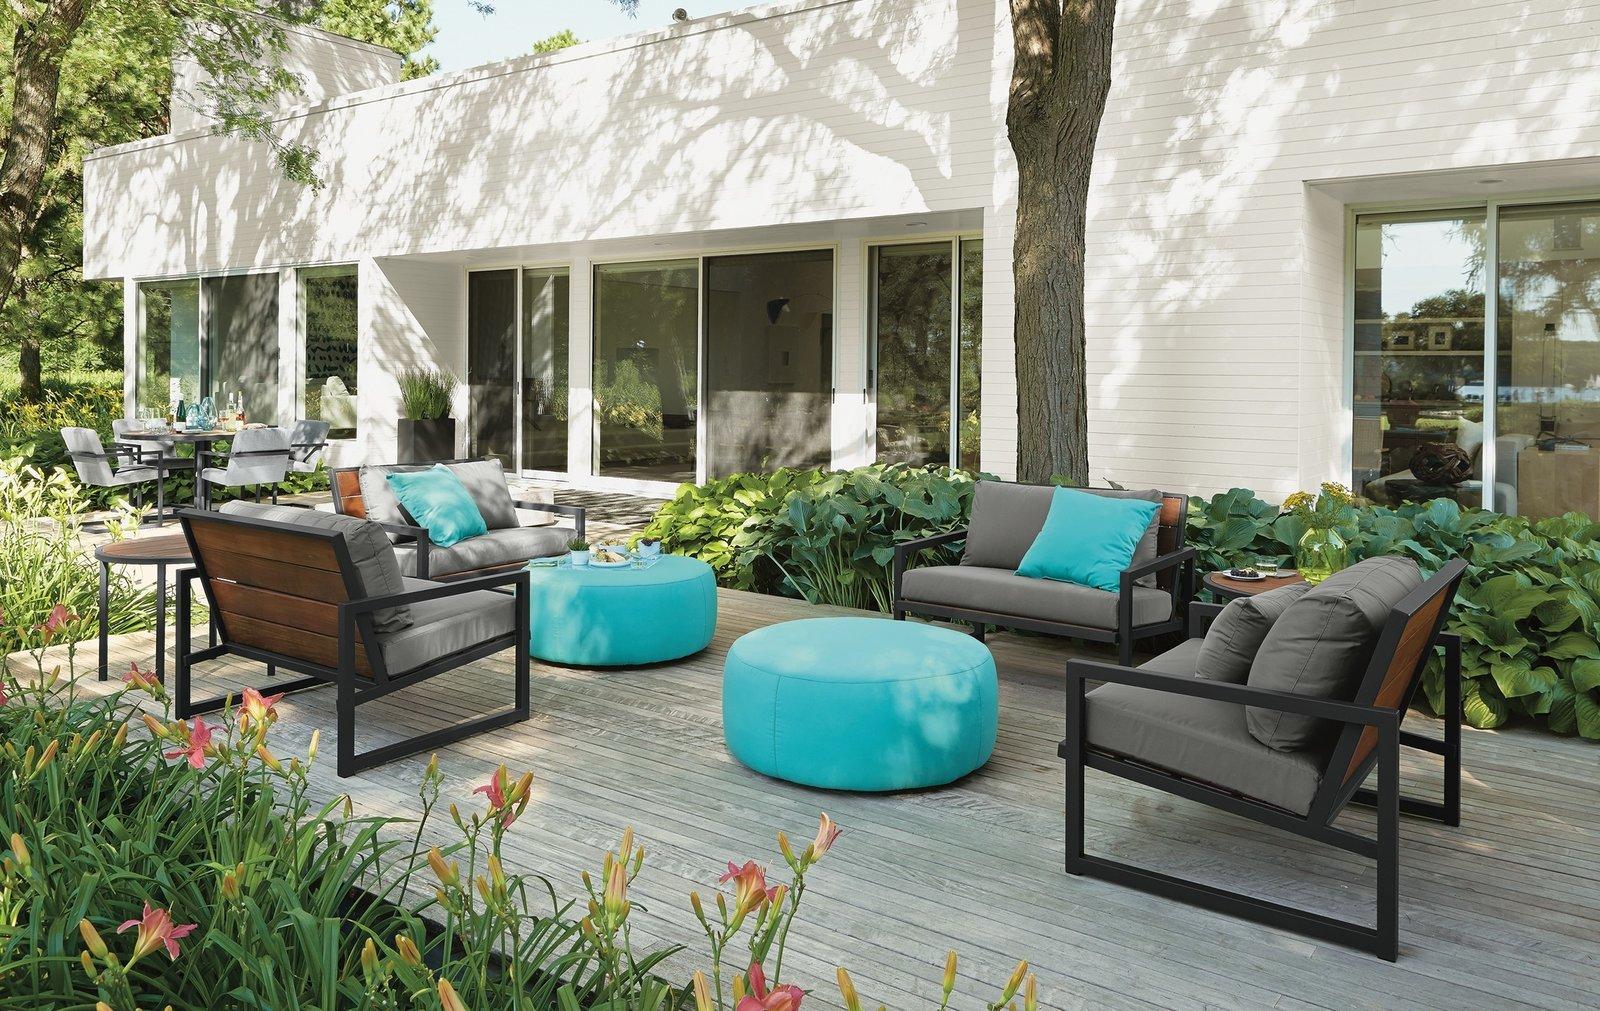 Outdoor, Back Yard, Large Patio, Porch, Deck, Wood Patio, Porch, Deck, Gardens, and Shrubs Montego sofa with cushions, Montego lounge chair with cushions, Boyd round ottoman, solid outdoor pillows  Photo 8 of 8 in Expert Design Advice: Outdoor Dining Spaces